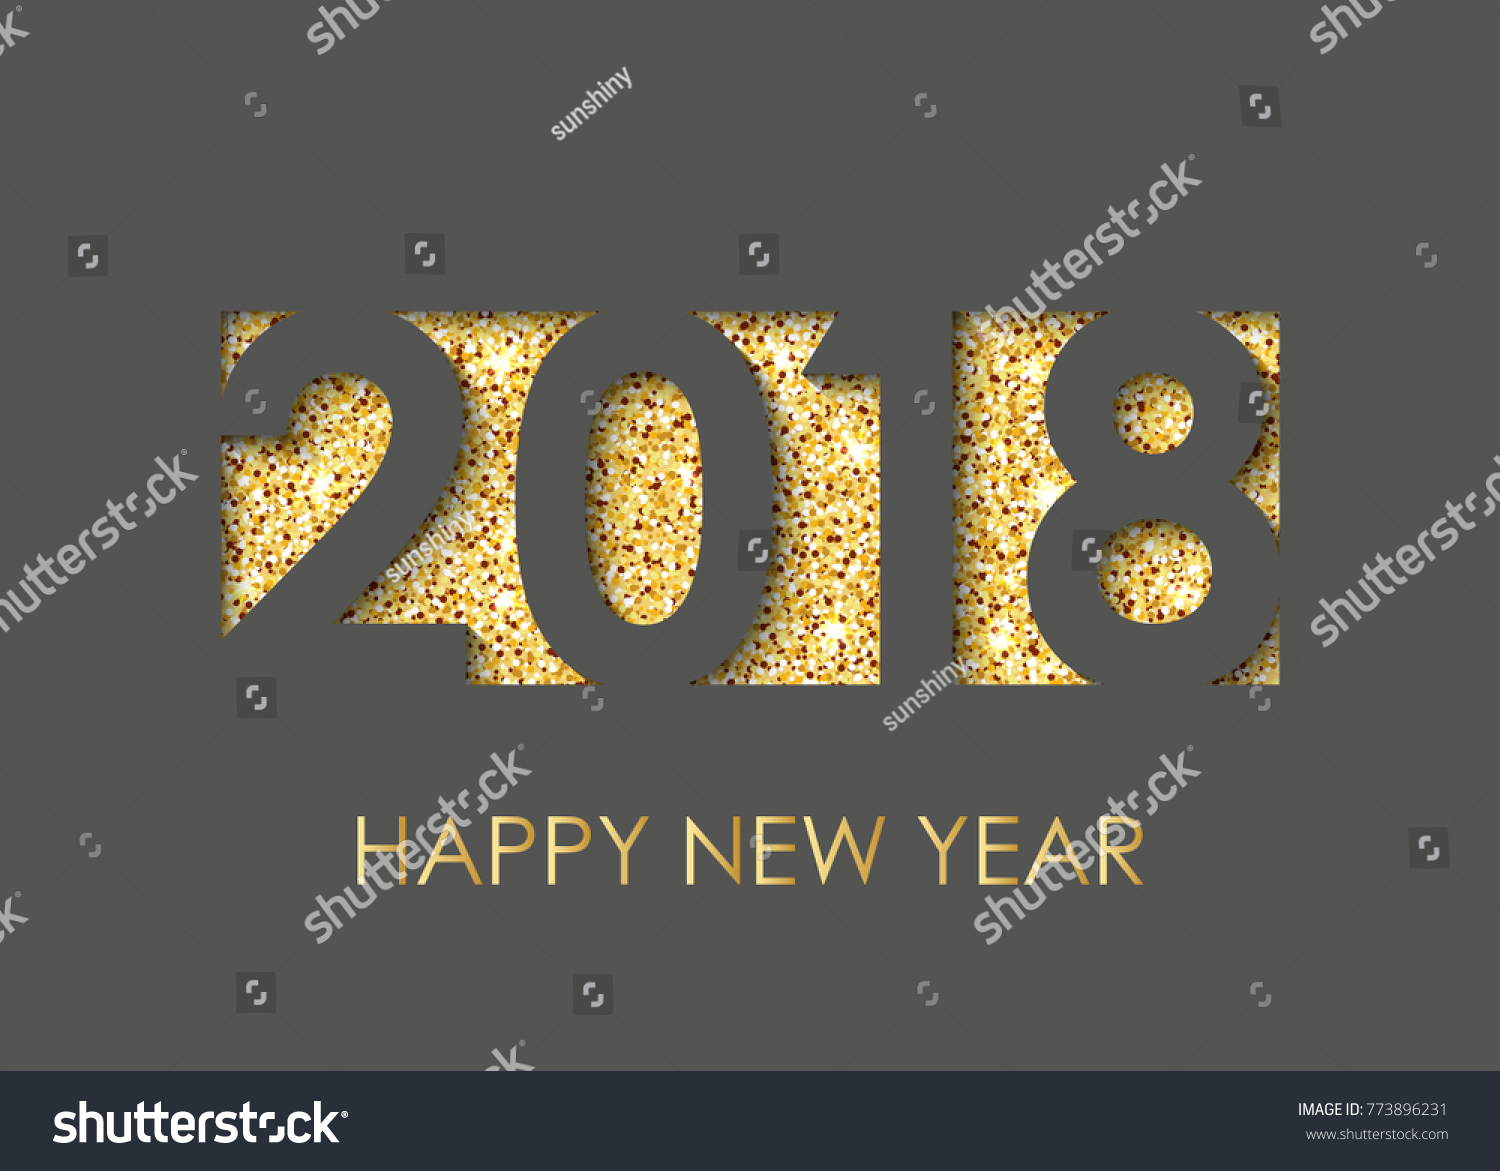 2018 happy new year text for greeting card calendar invitation black background with